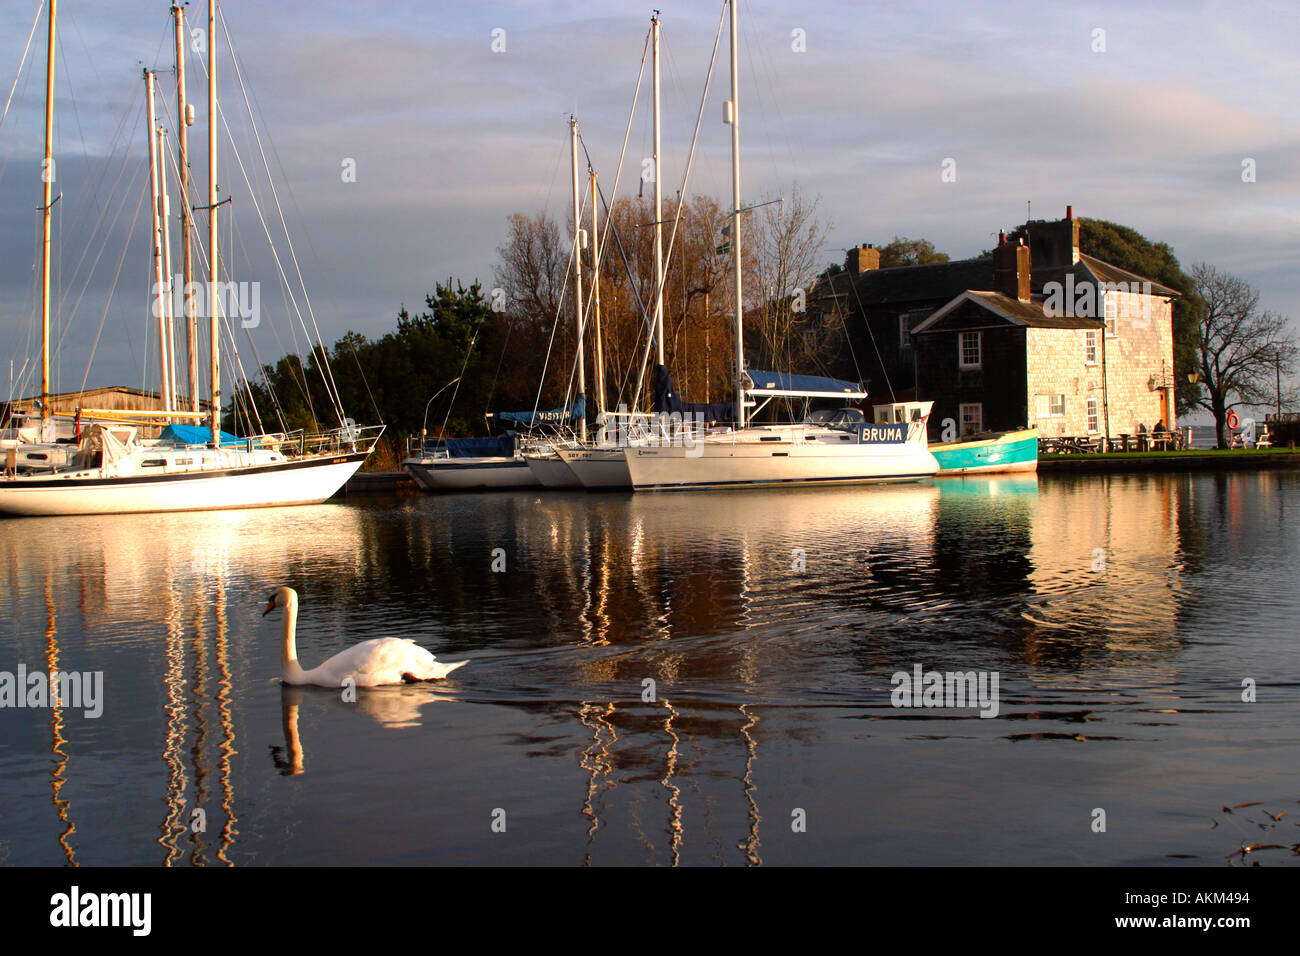 Turf Locks pub on Exeter Canal between Exeter and Exmouth on River Exe estuary in south Devon England UK GB - Stock Image